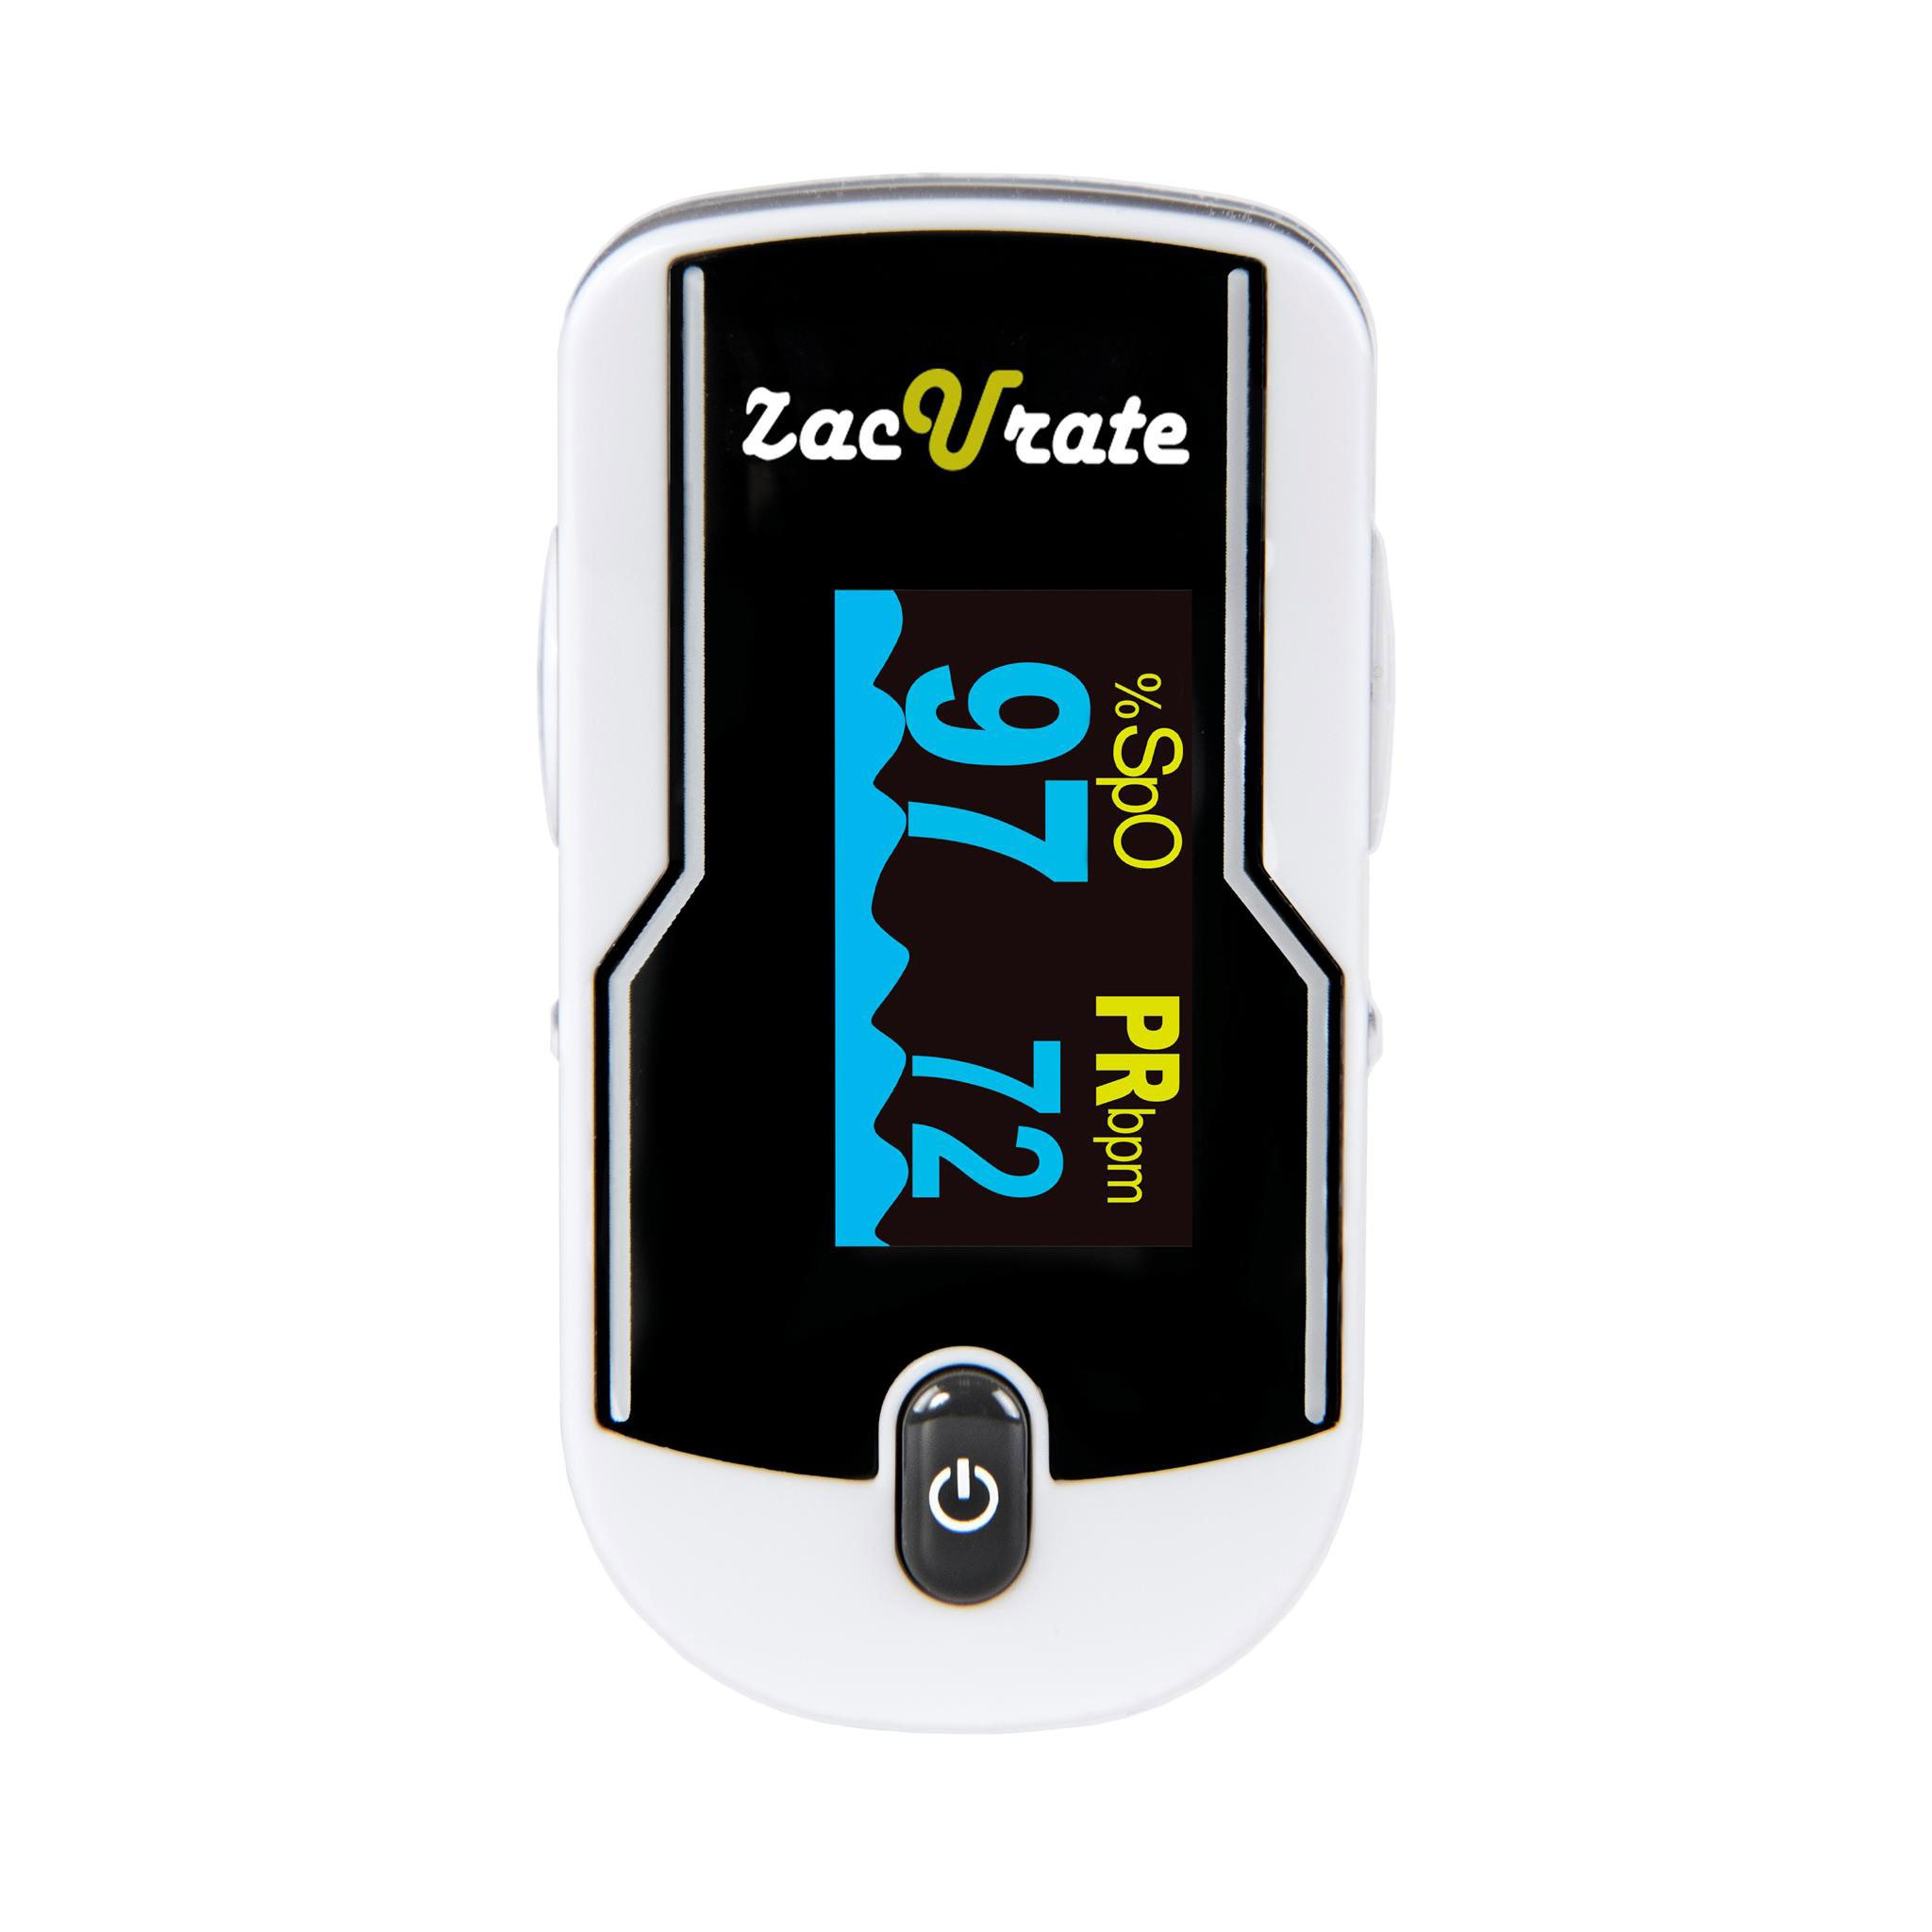 Zacurate 430-DL Premium Fingertip Pulse Oximeter Oximetry Blood Oxygen Saturation Monitor with silicon cover, batteries and lanyard